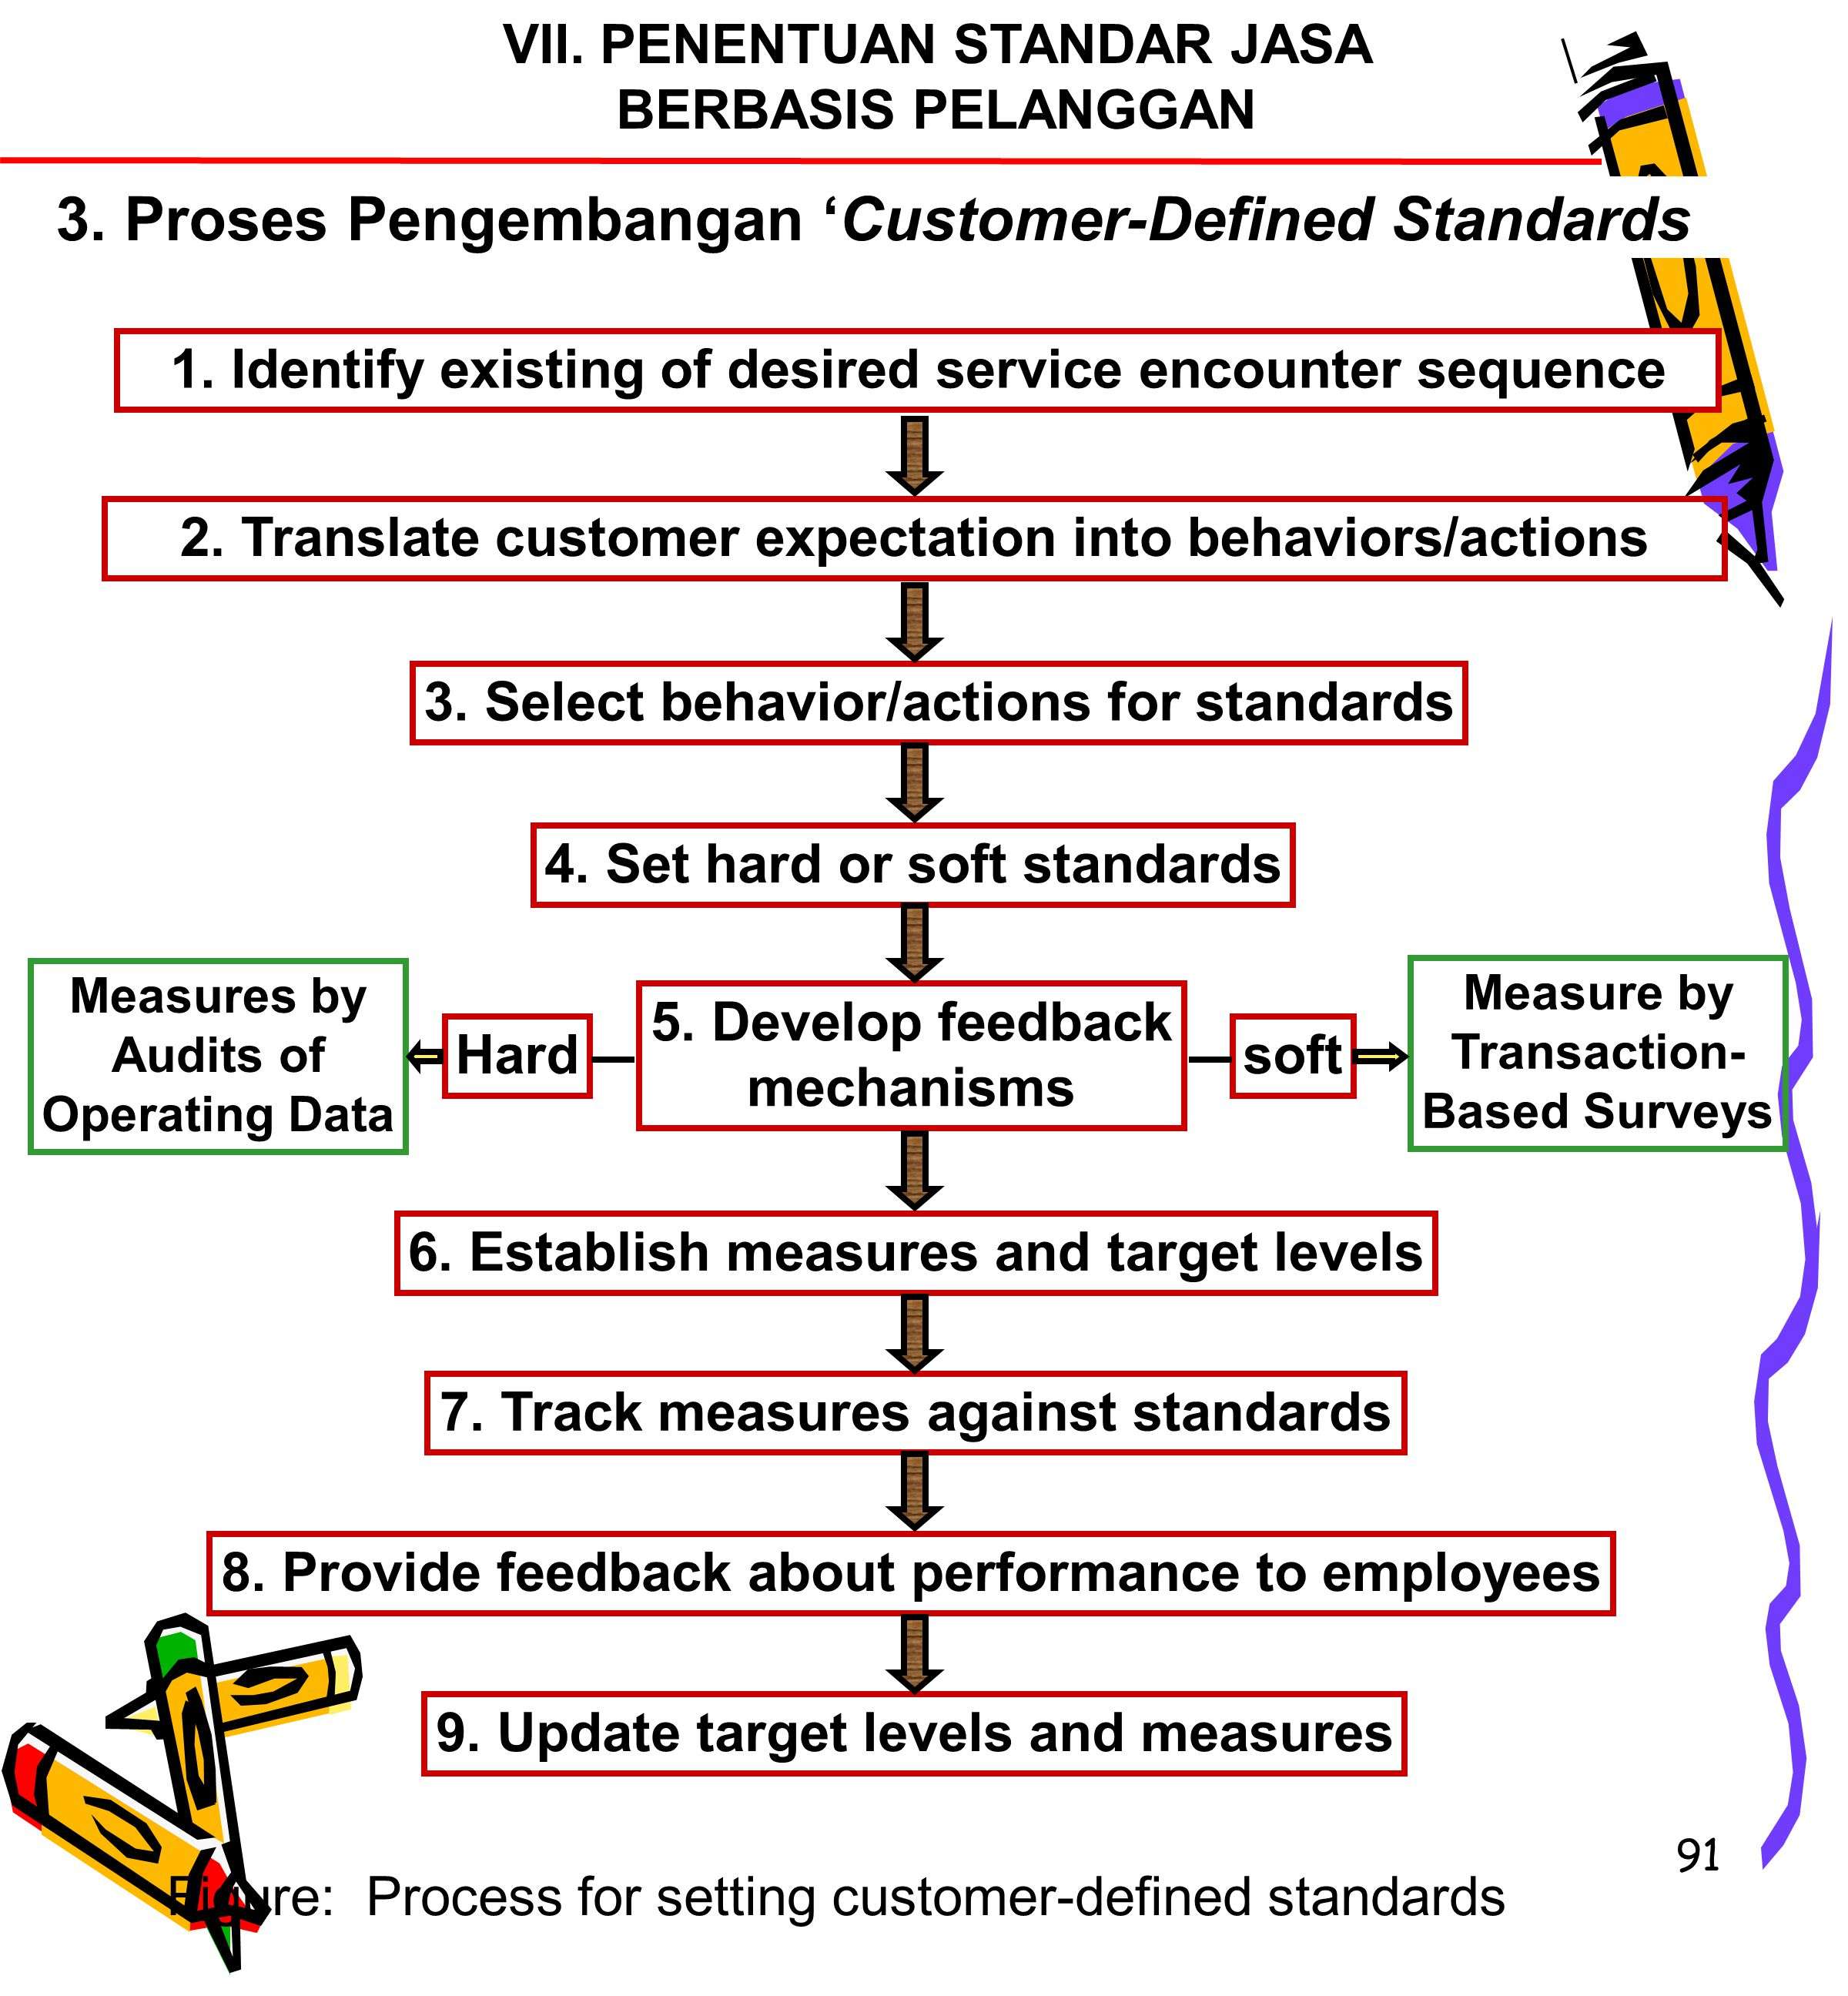 3. Proses Pengembangan 'Customer-Defined Standards